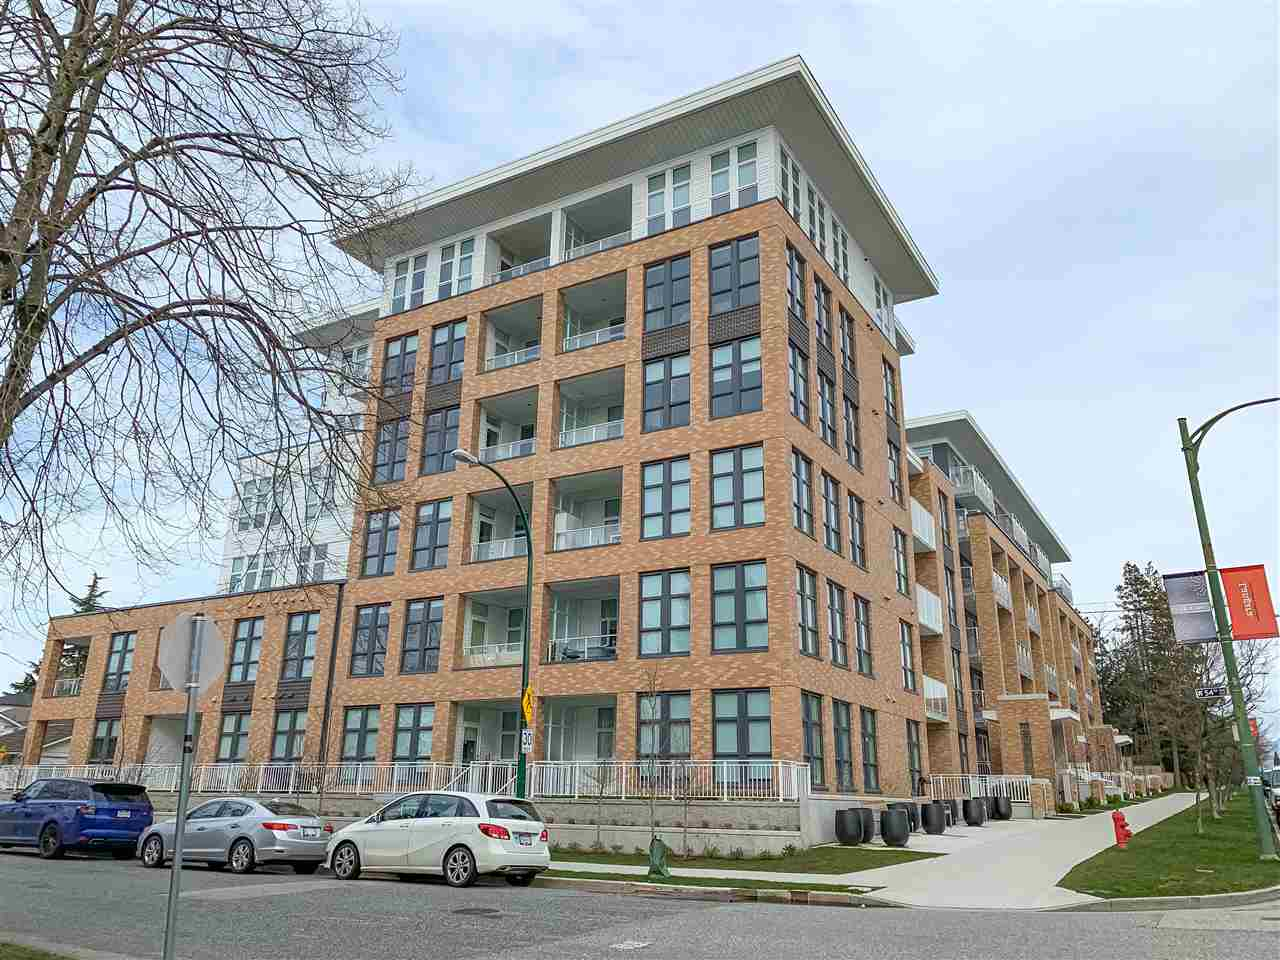 304 6999 CAMBIE STREET - South Cambie Apartment/Condo for sale, 3 Bedrooms (R2466141)